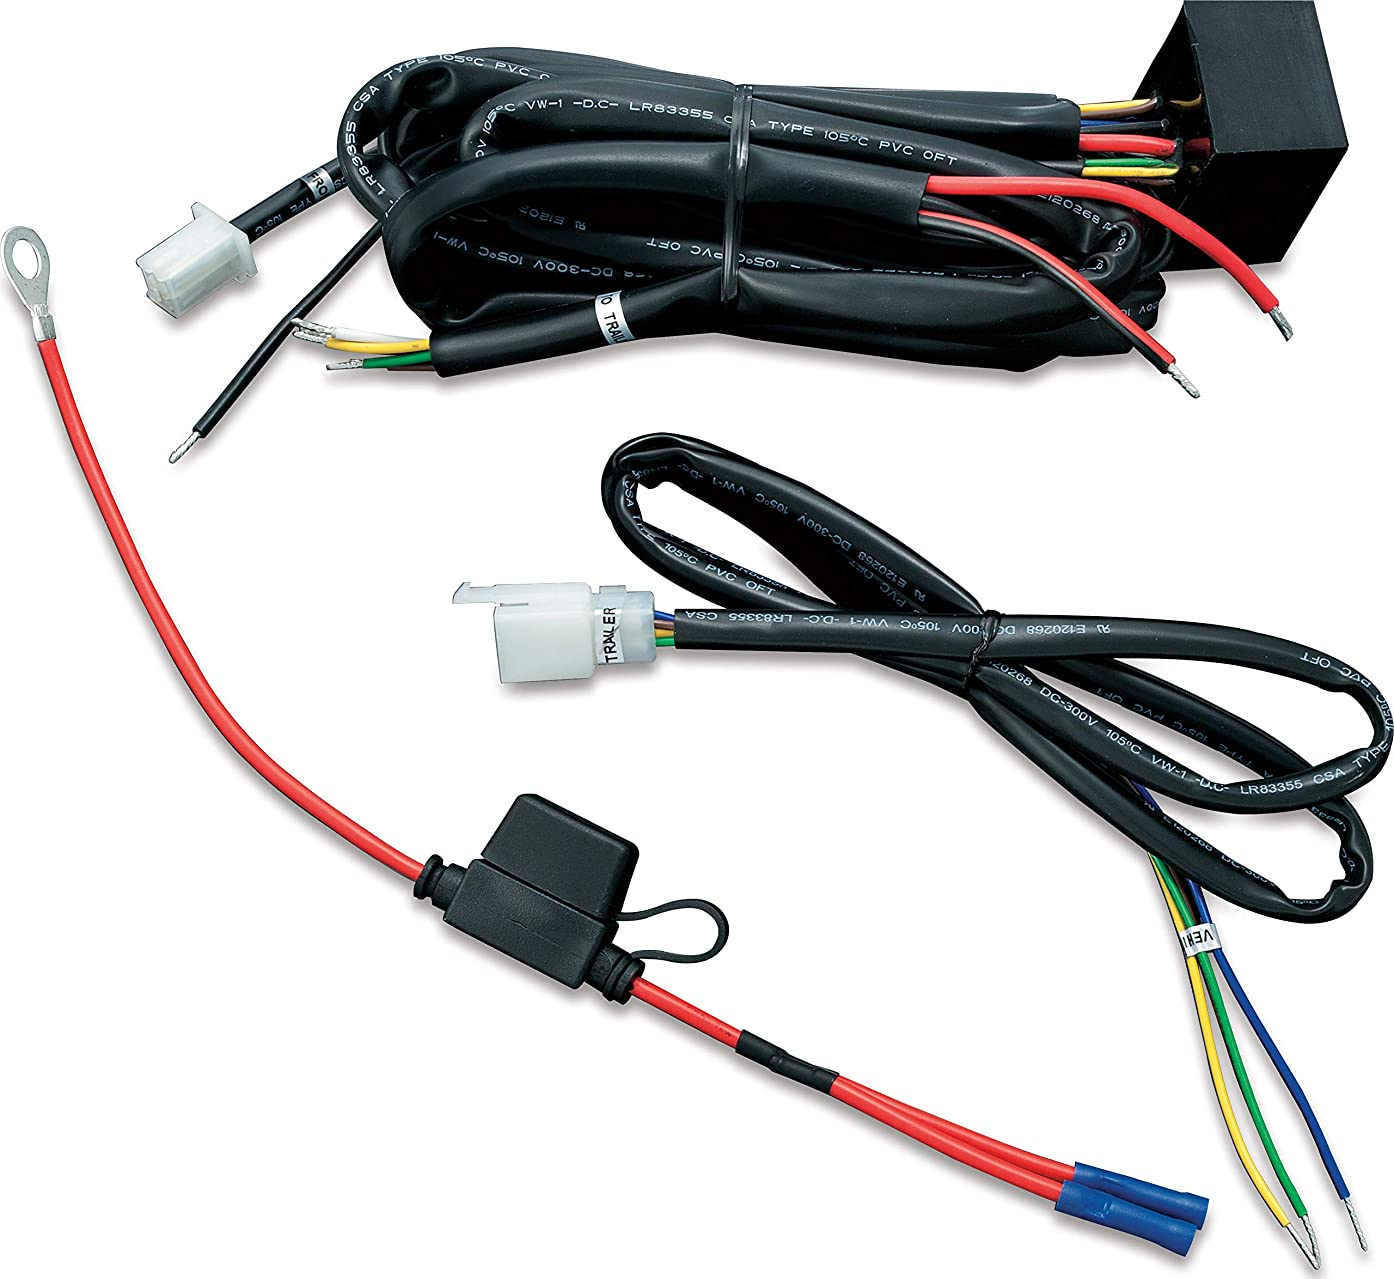 Kuryakyn 7671 Motorcycle Accessory: Universal Trailer Wiring with Relay Harness for 12V Applications